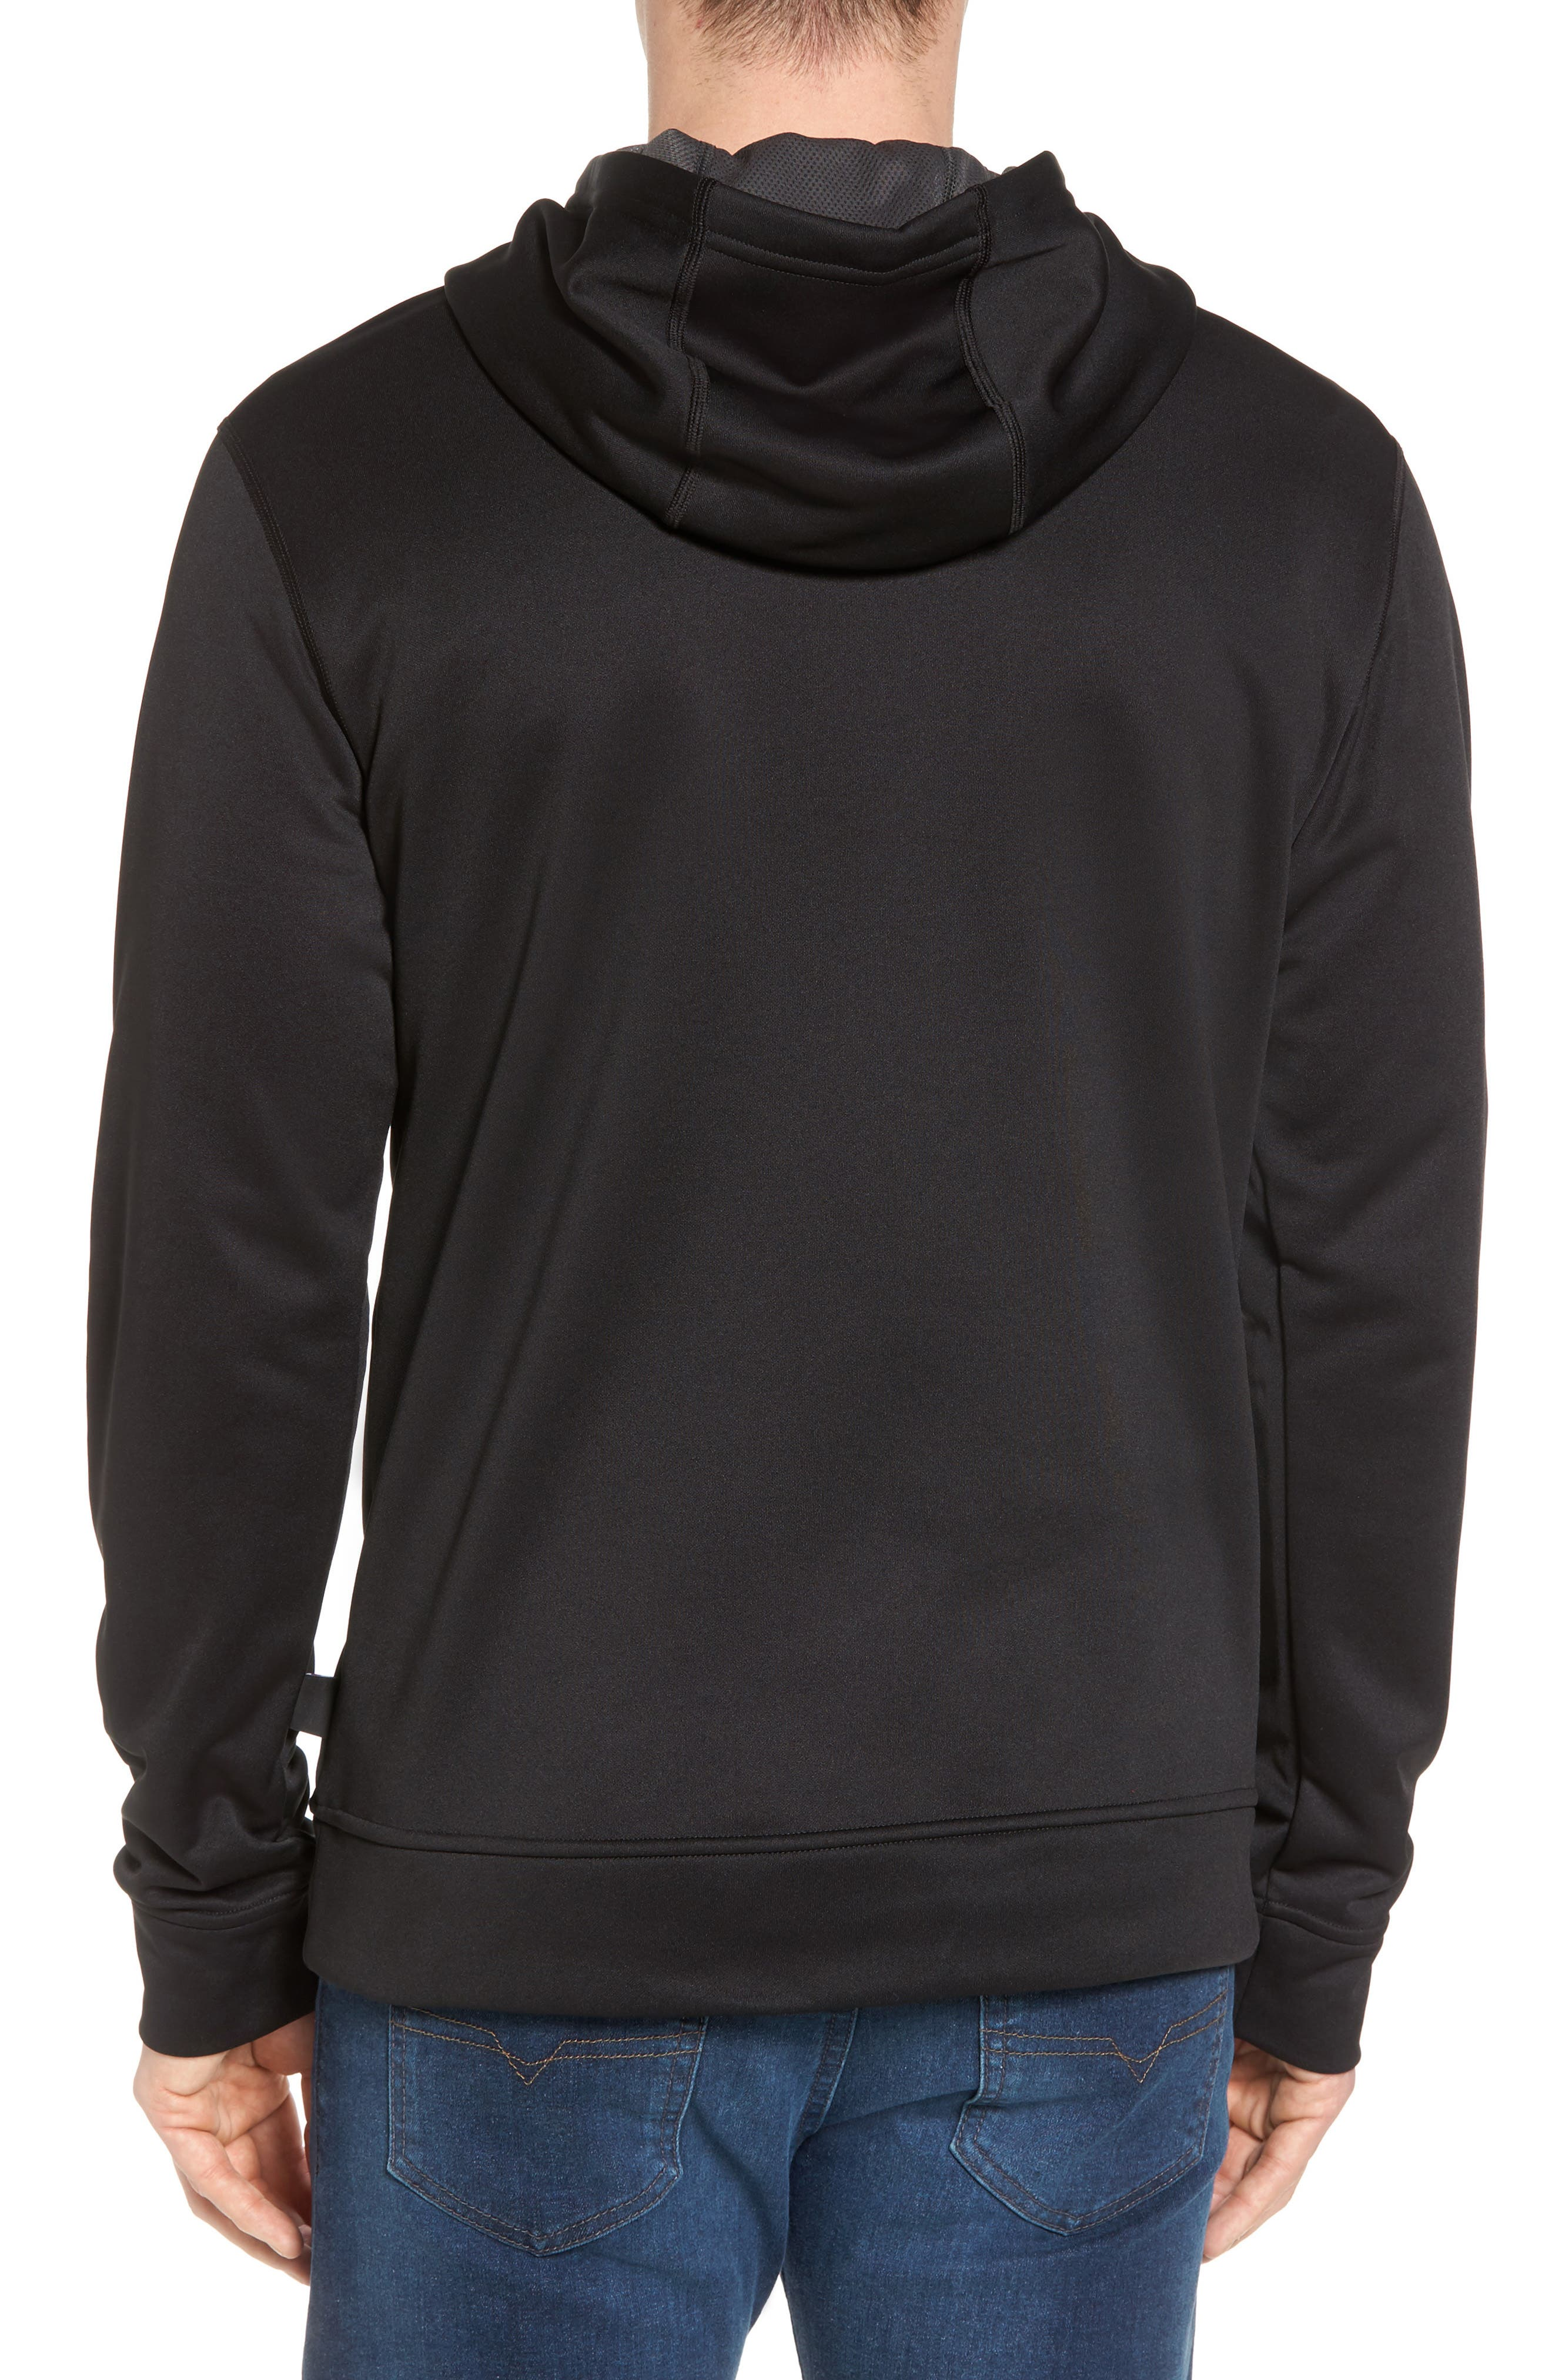 Polycycle Hoodie,                             Alternate thumbnail 2, color,                             001